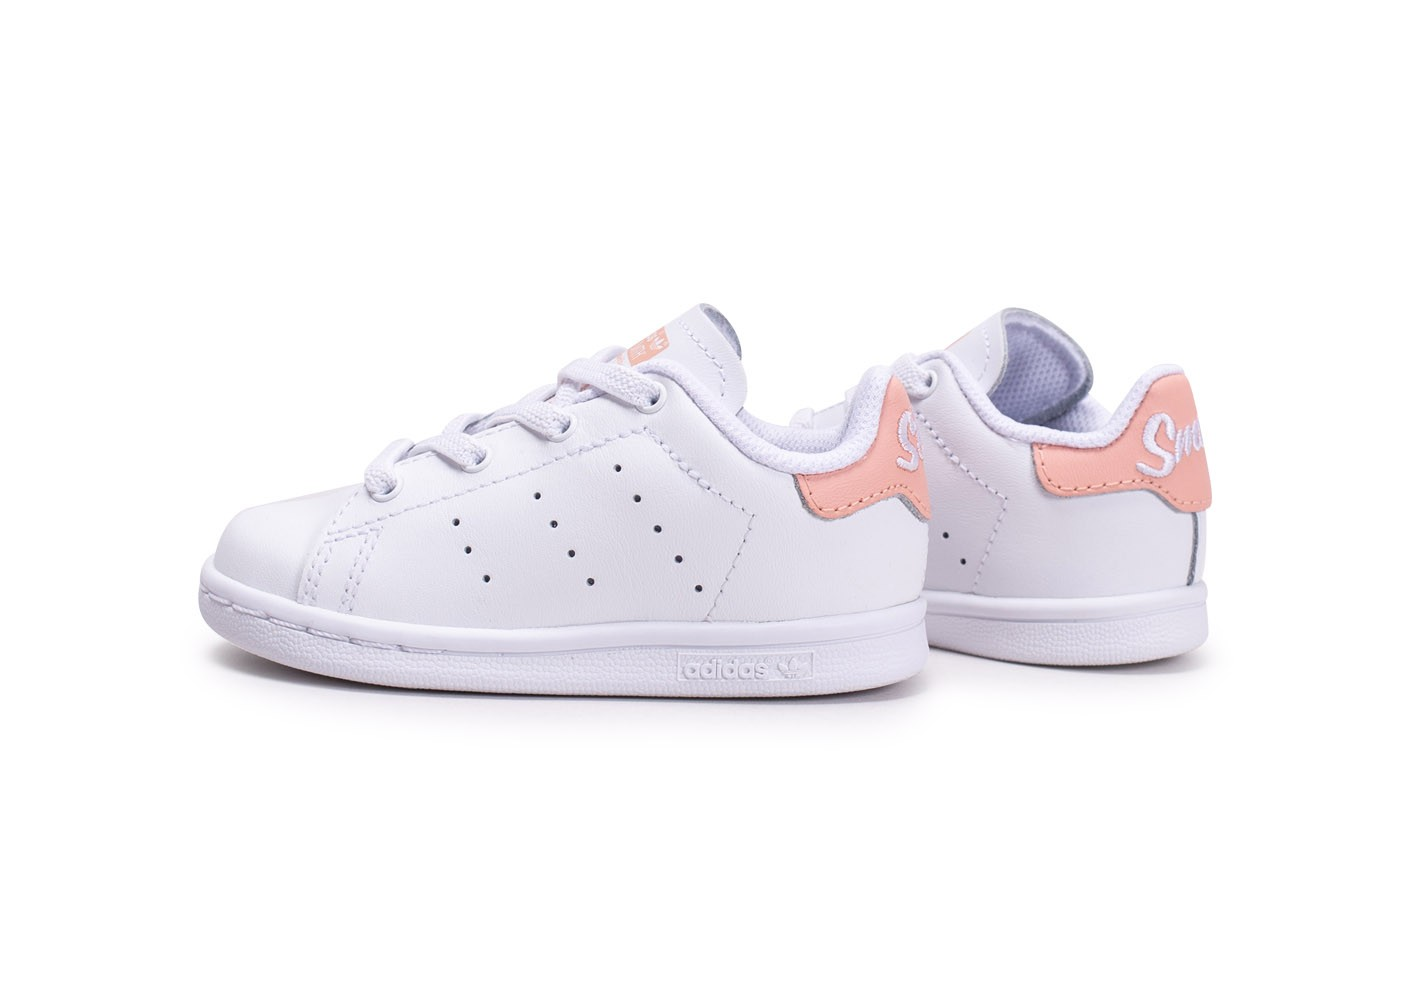 adidas Stan Smith blanche et rose bébé - Chaussures adidas ...